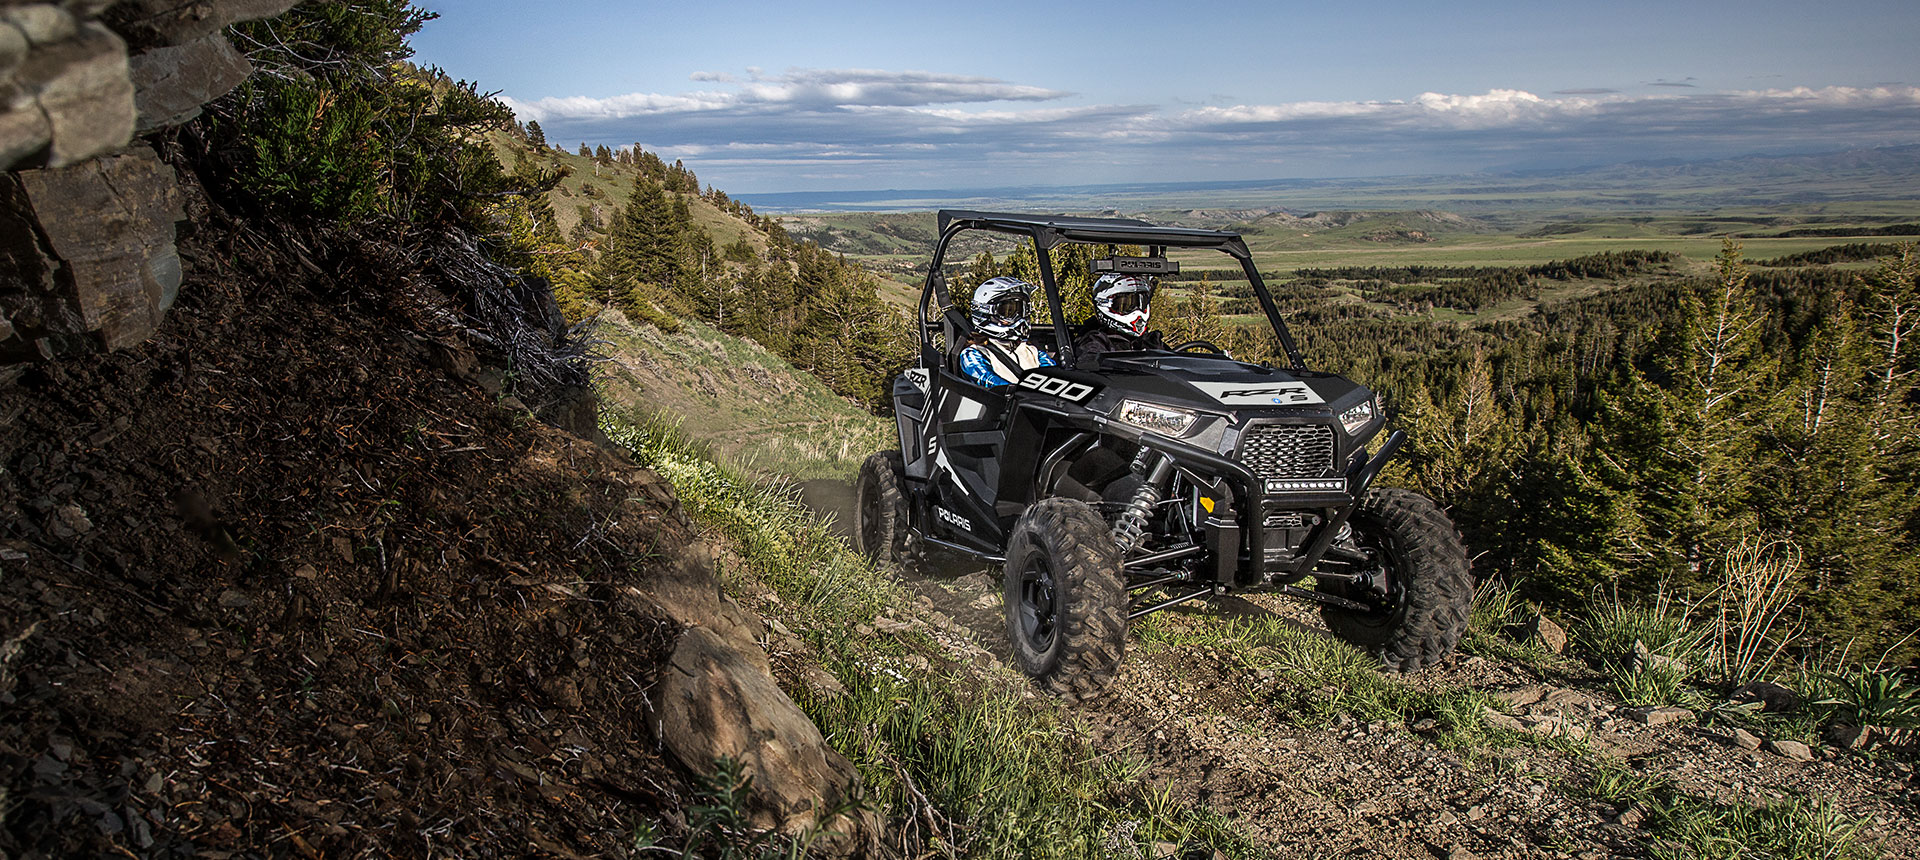 2019 Polaris RZR S 900 EPS in Massapequa, New York - Photo 4